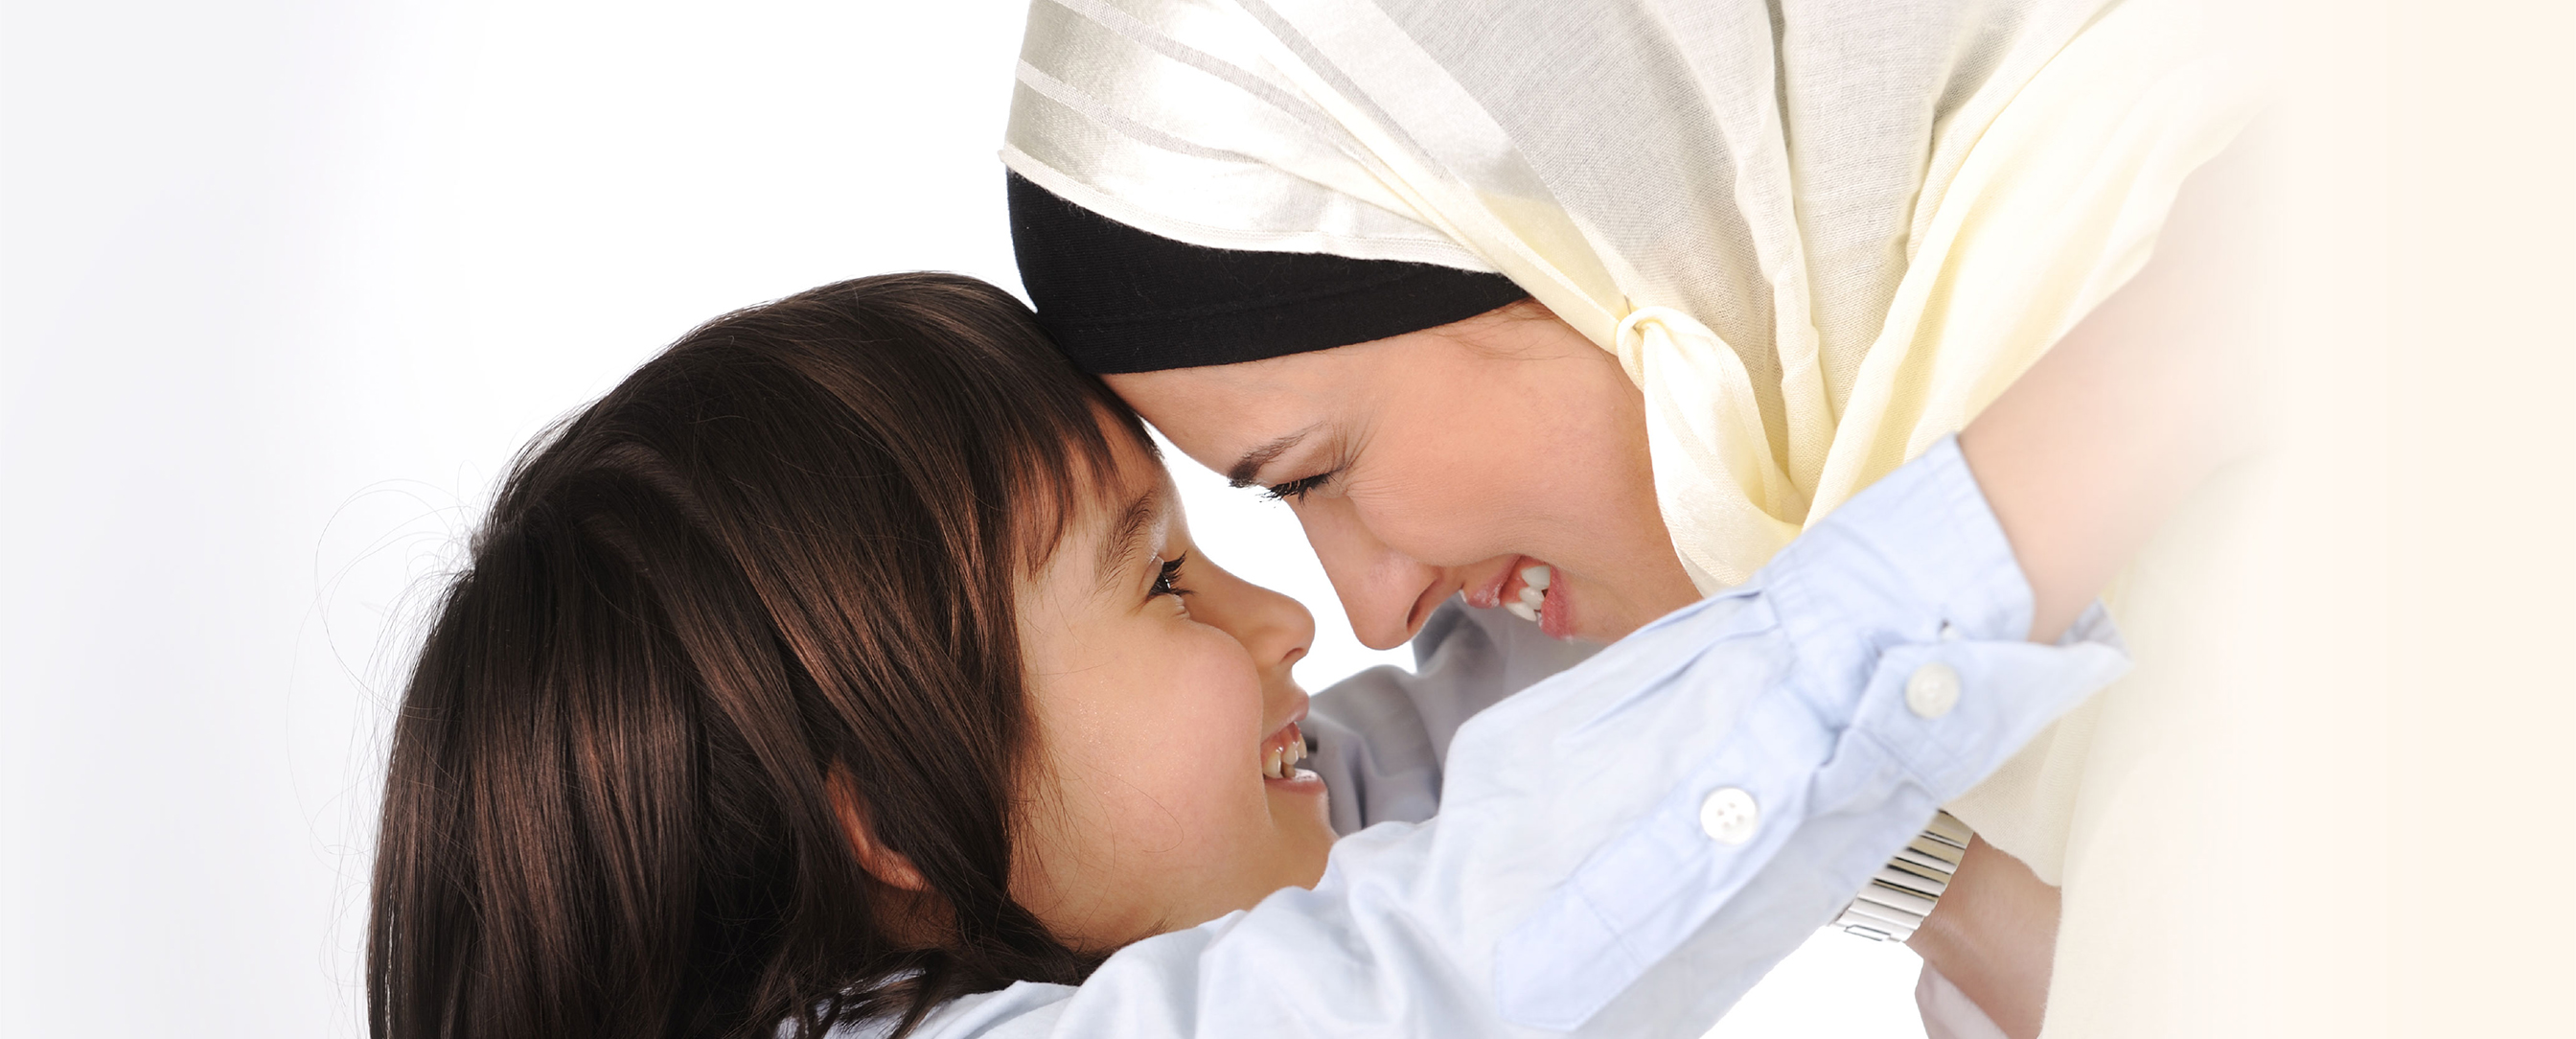 Muslim Fostering: We need to care for the future generation